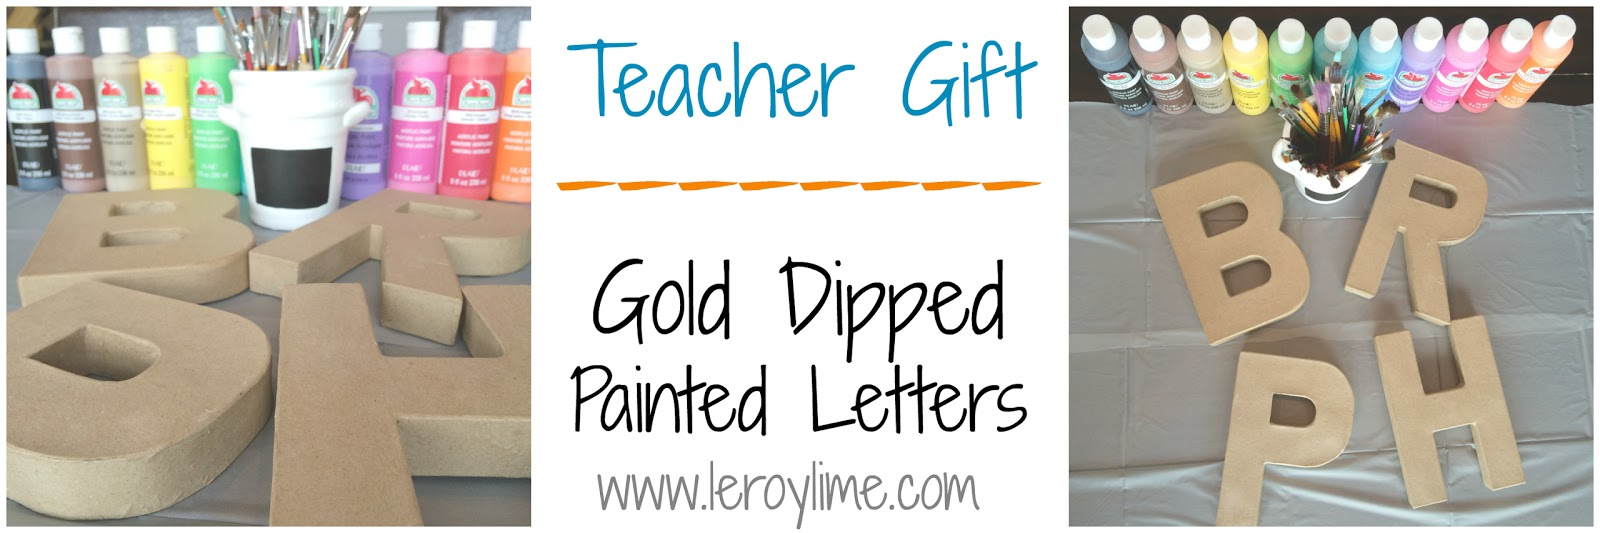 Leroylime gold dipped painted letters teacher gift i picked up the letters from a craft store they are lightweight and made of hollow cardboard the paint i had on handjust pulled out the colors and let spiritdancerdesigns Image collections